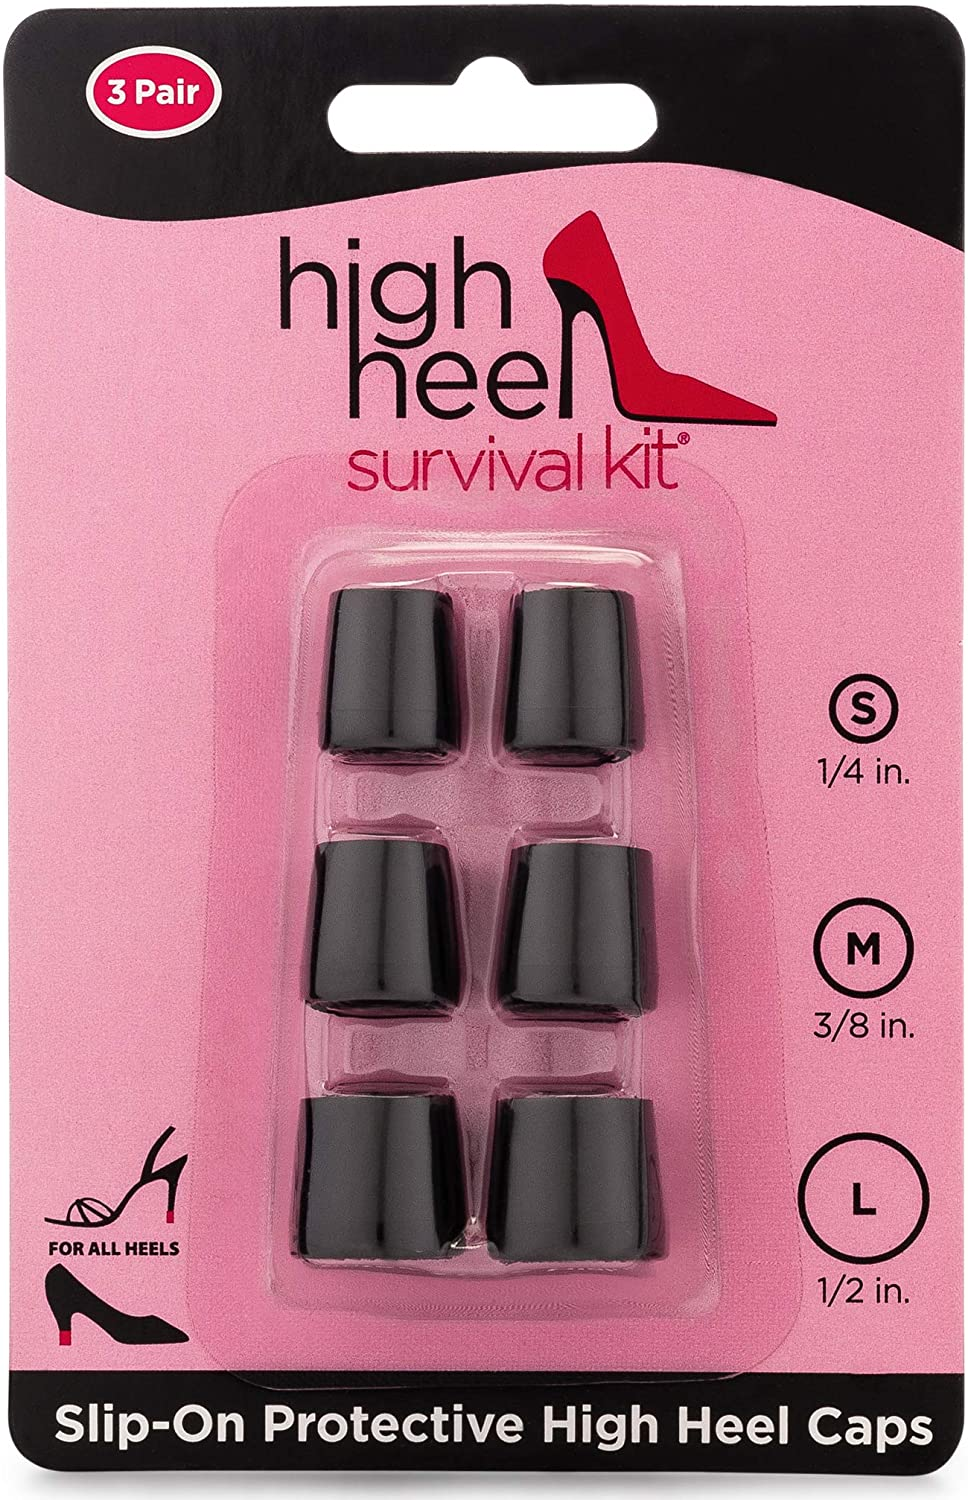 High Heel Survival Kit | Heel Caps for Everyday Use | 3 Sizes Included